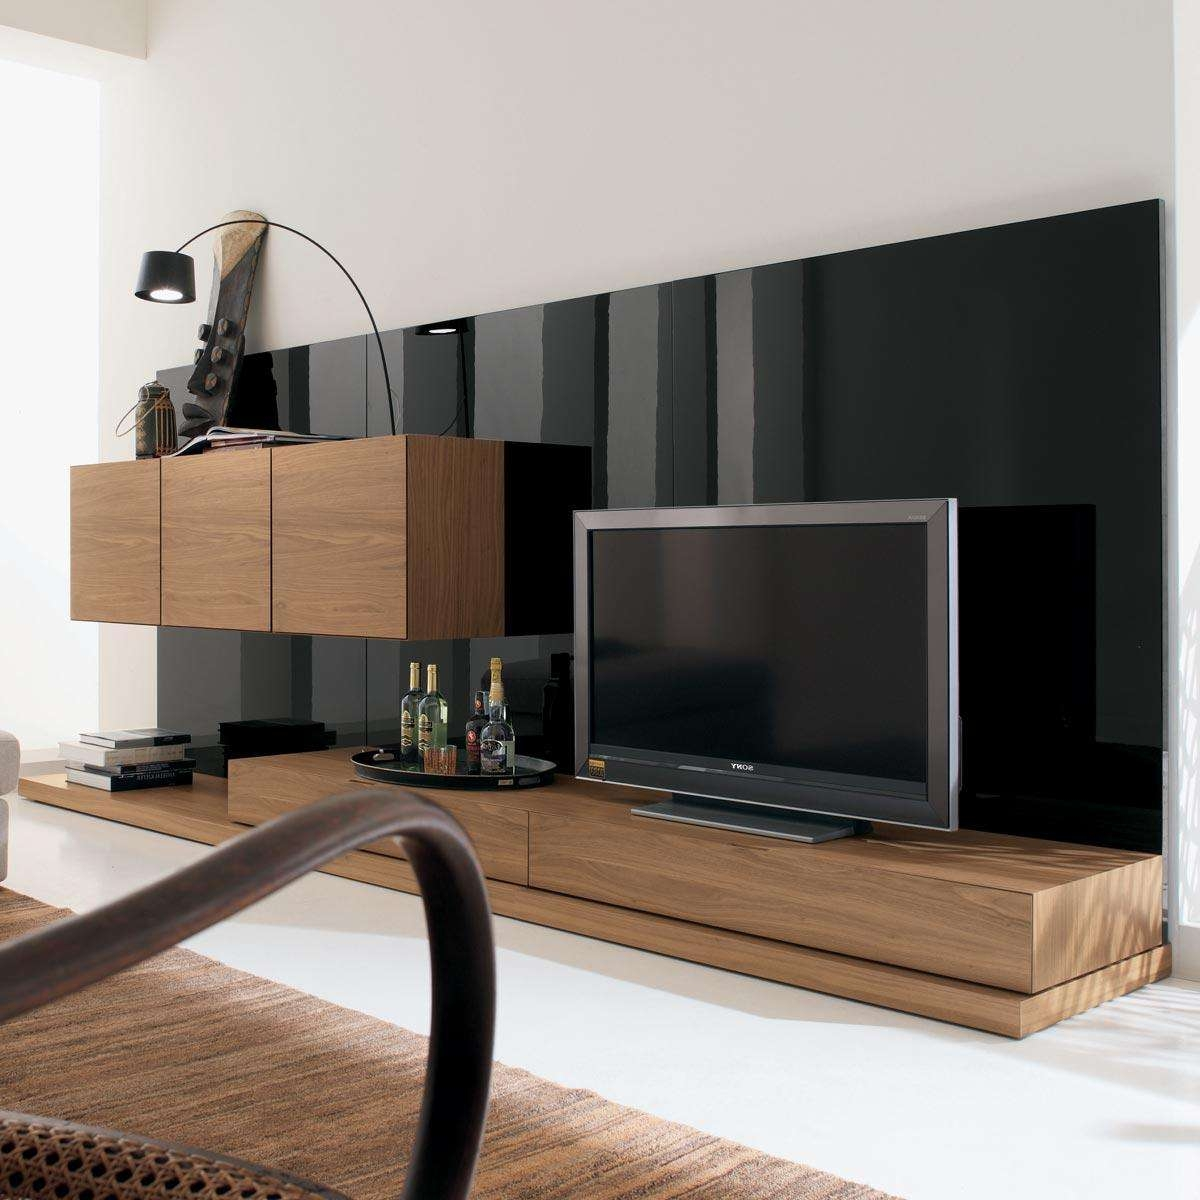 Modern Nature Wood Big Screen Tv Stand Wall Mounted Living Room Pertaining To Contemporary Cabinets